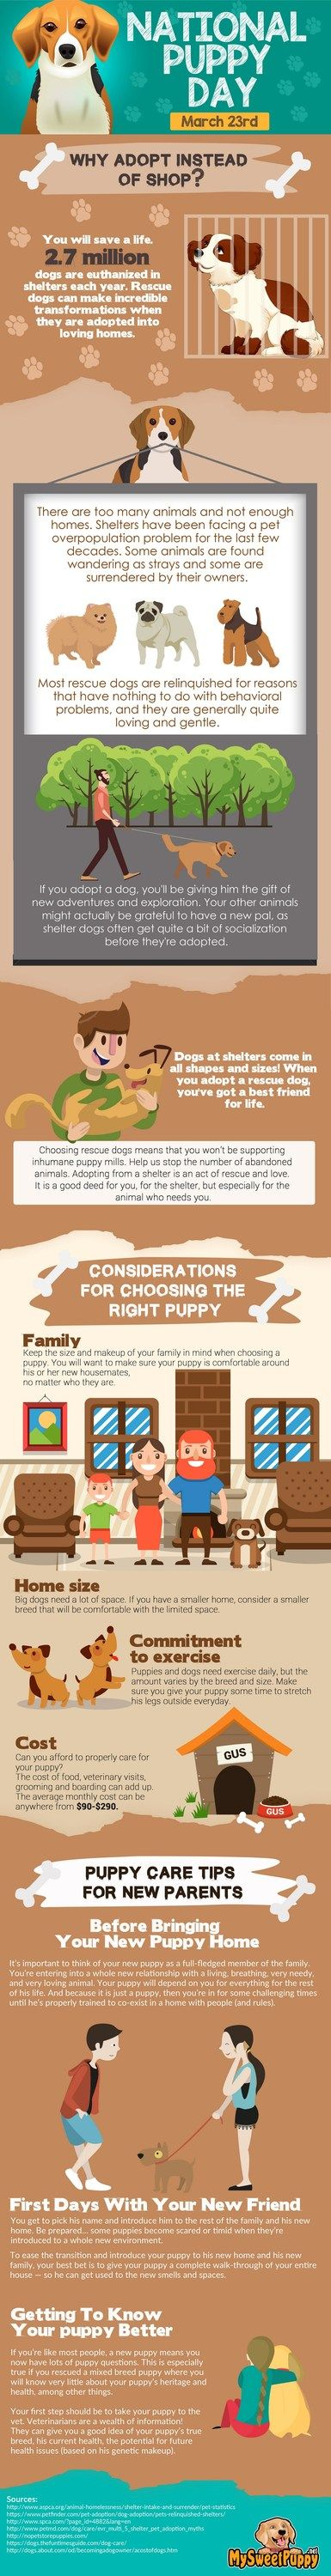 Some useful tips for National Puppy Day!